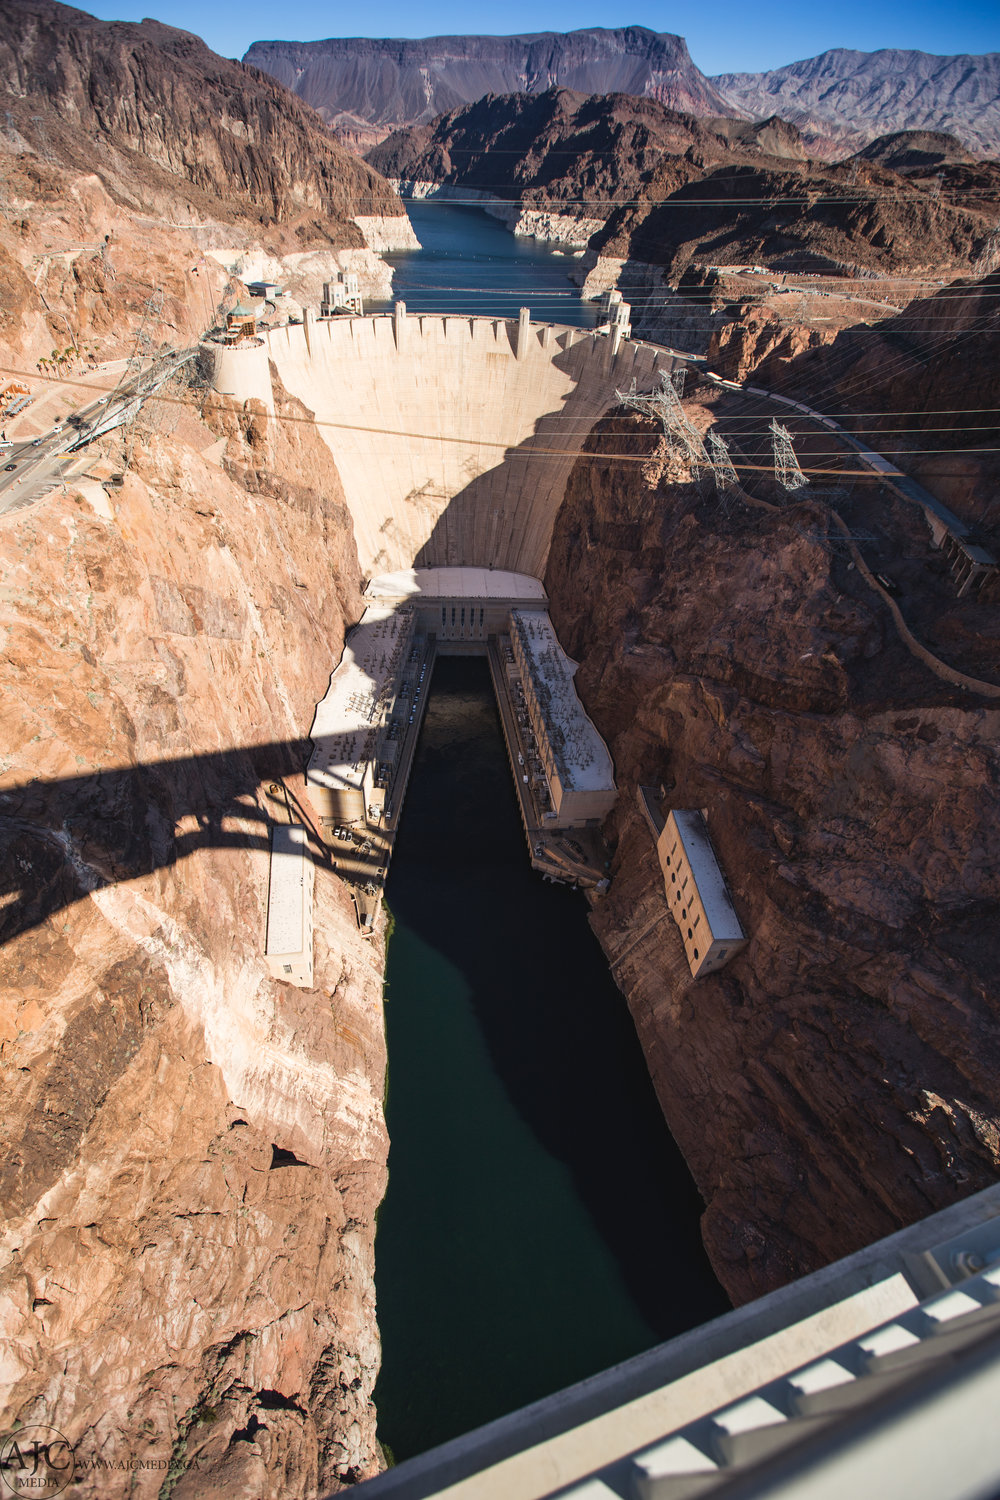 Probably the most common shot of the Hoover Dam